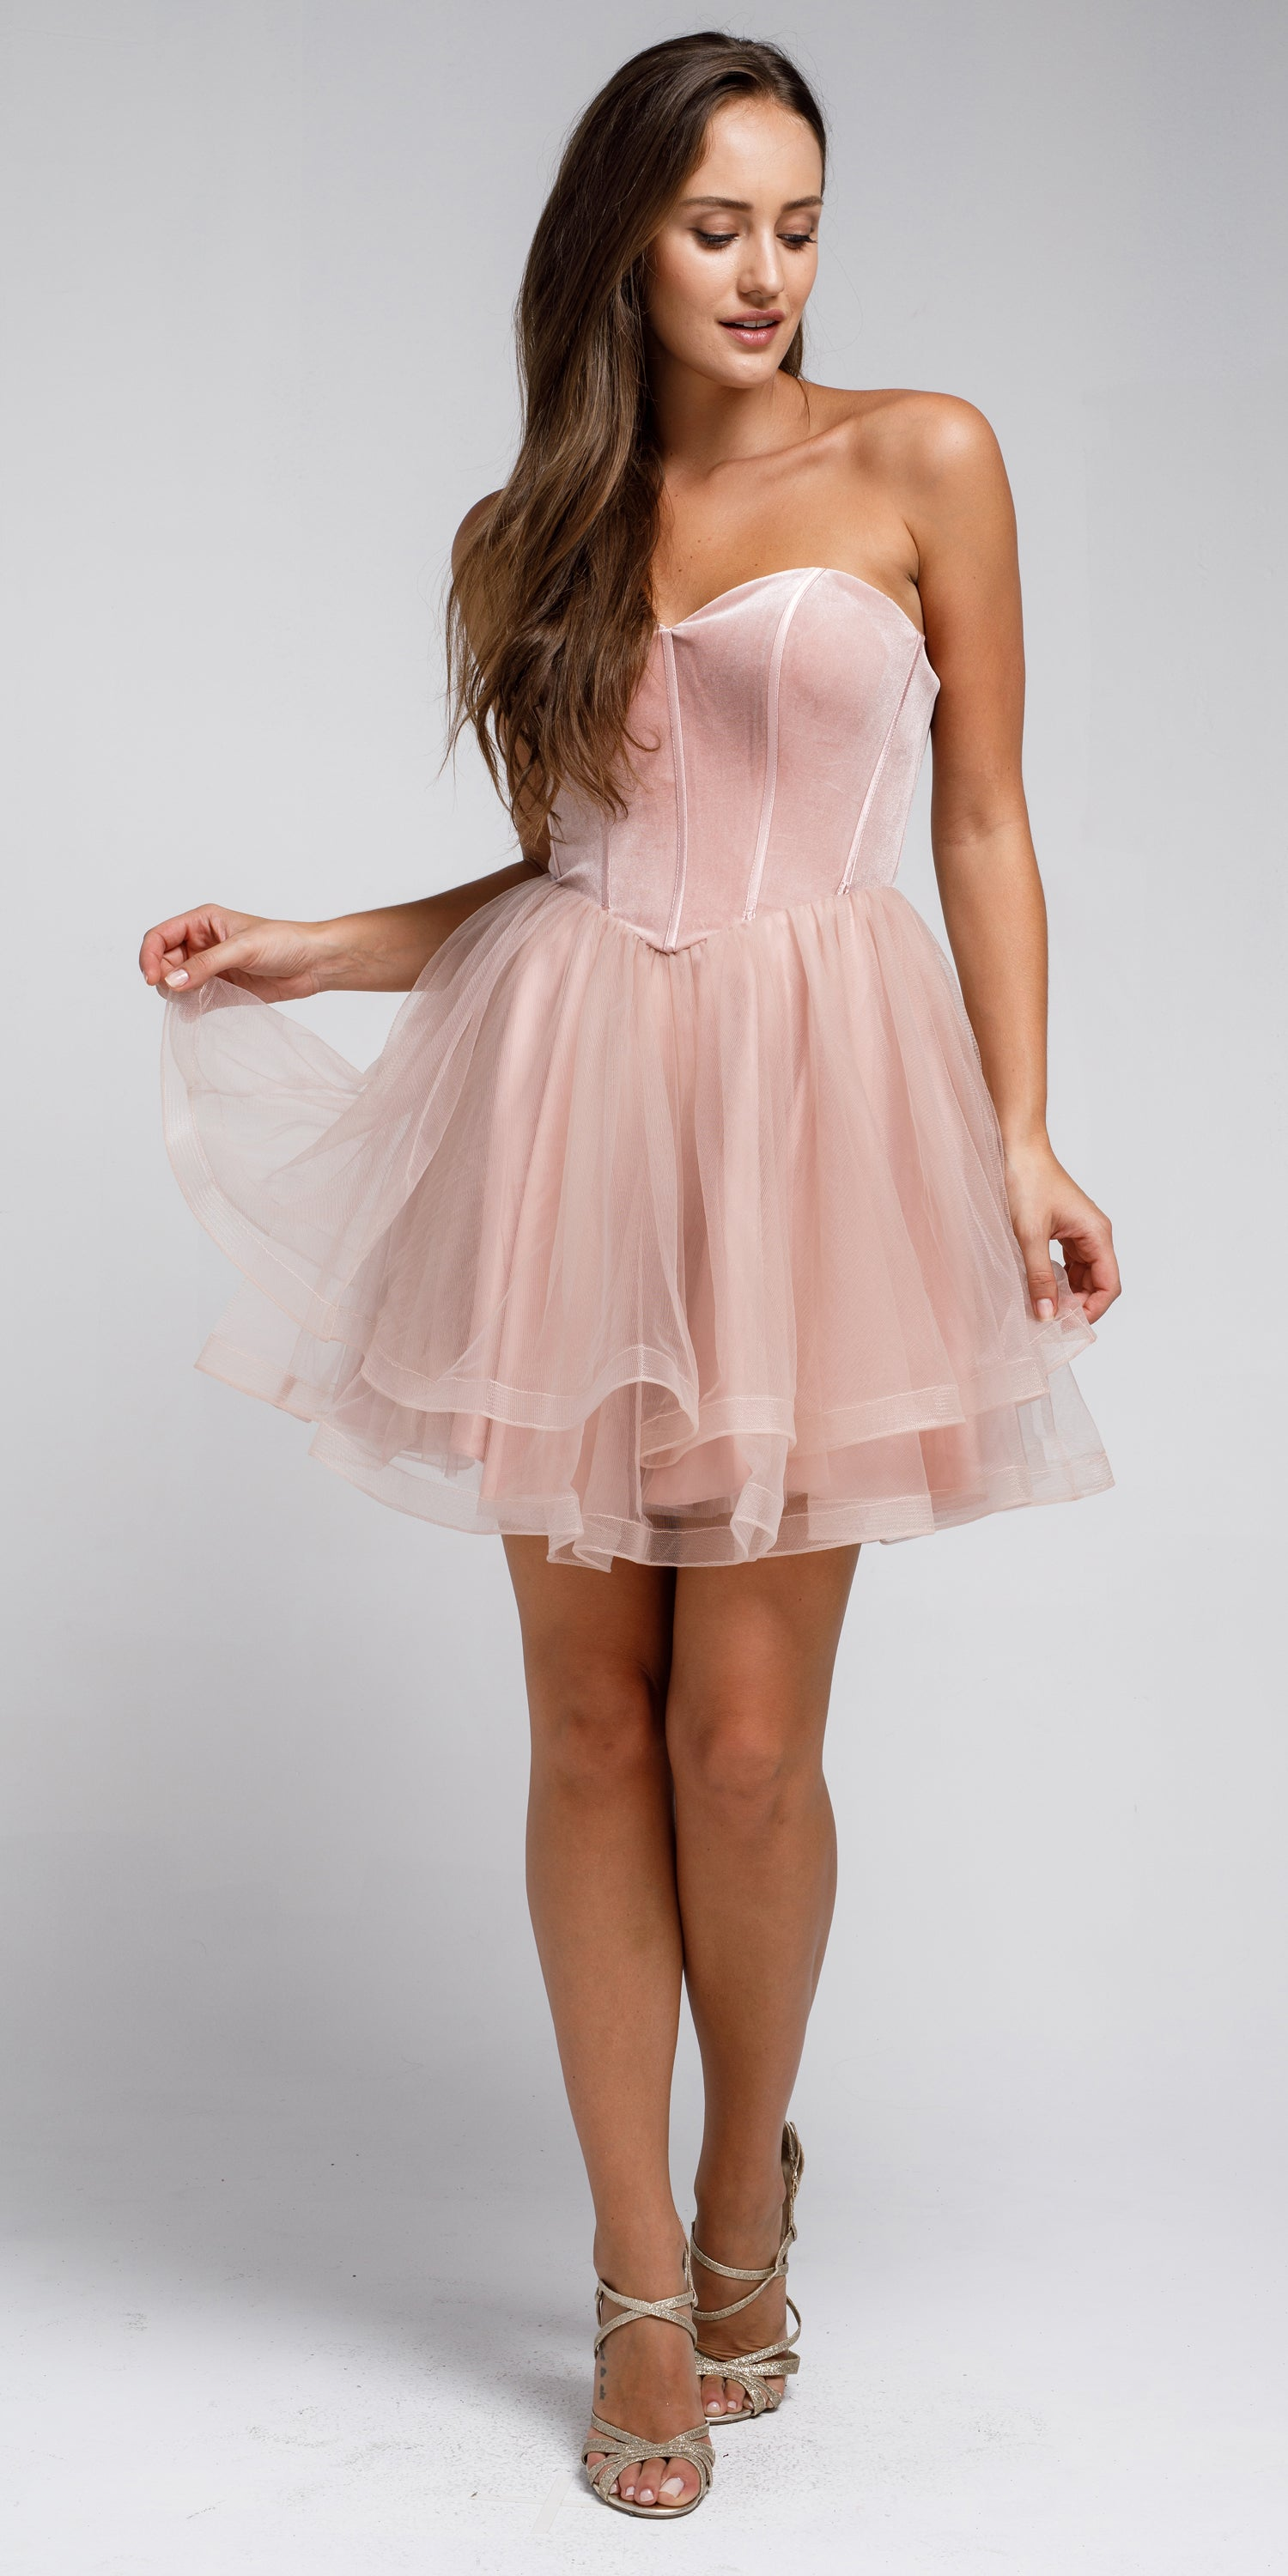 Main image of Strapless Short Babydoll Prom Dress